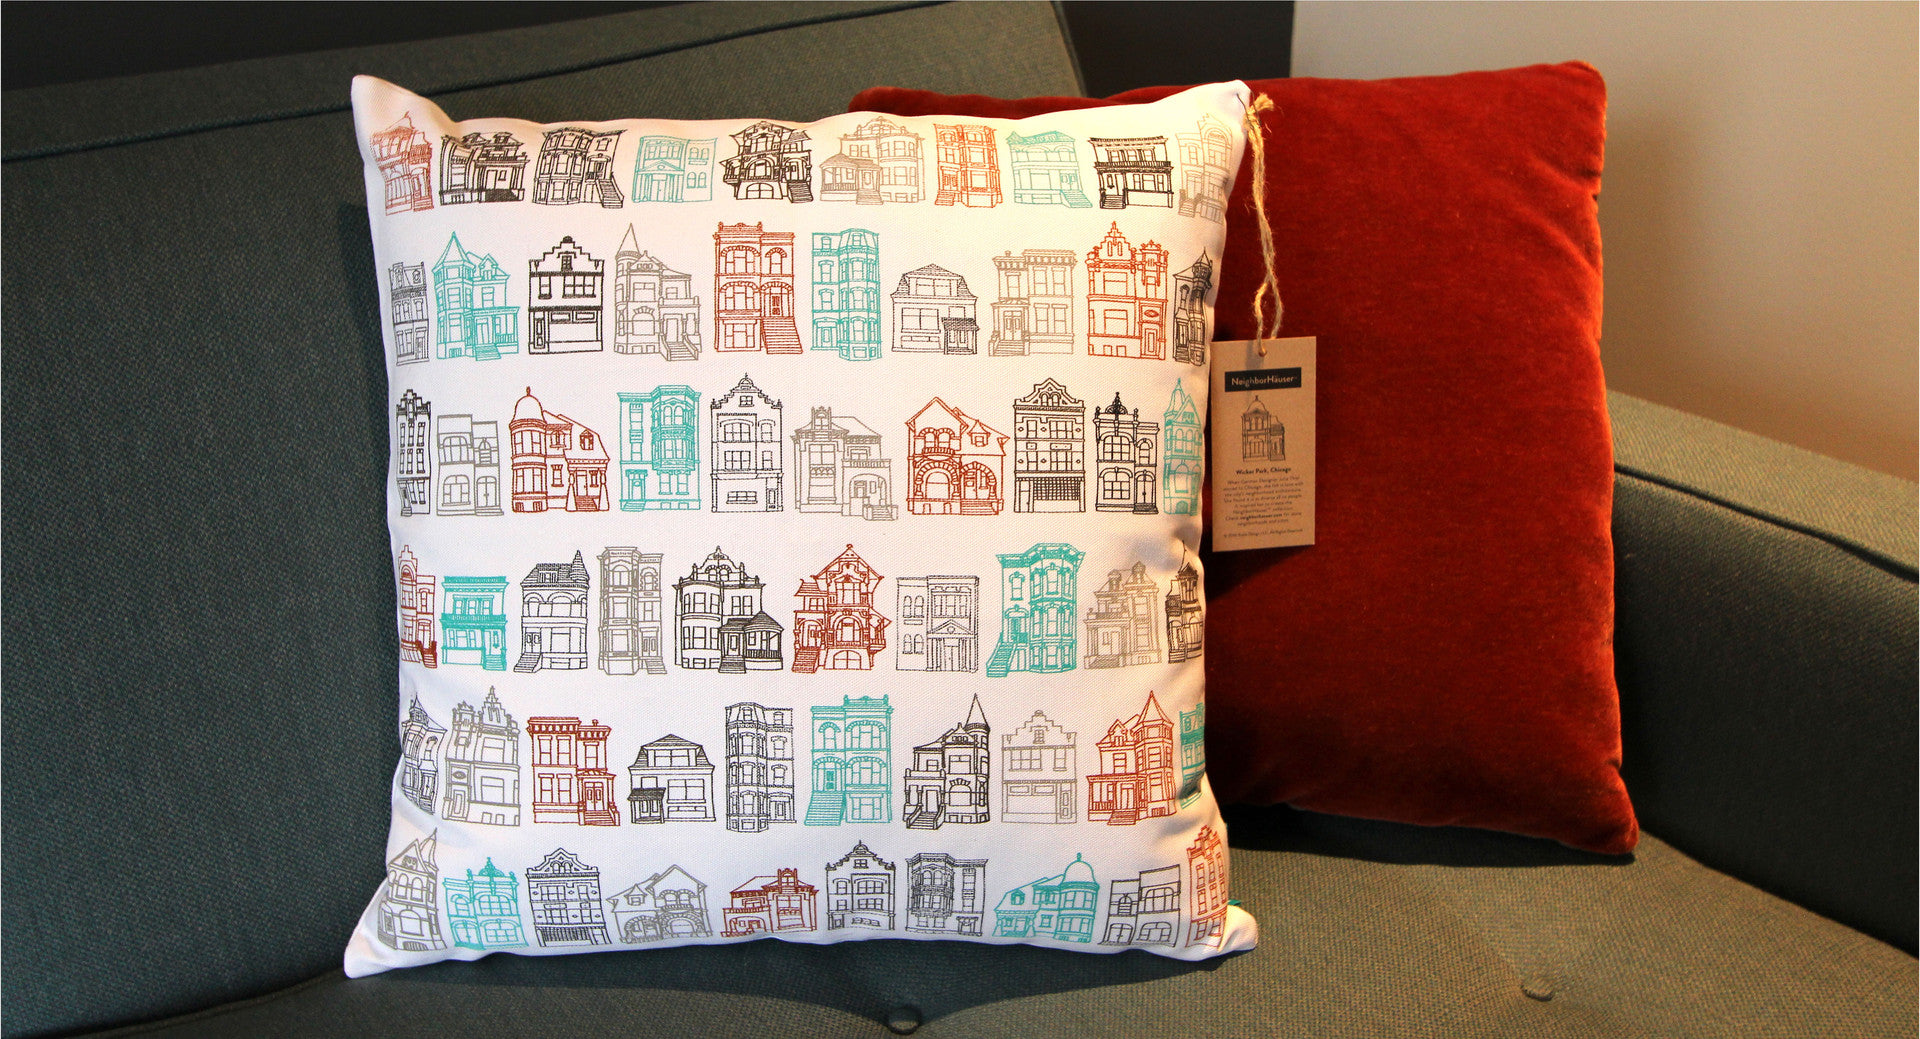 Wicker Park Pillow